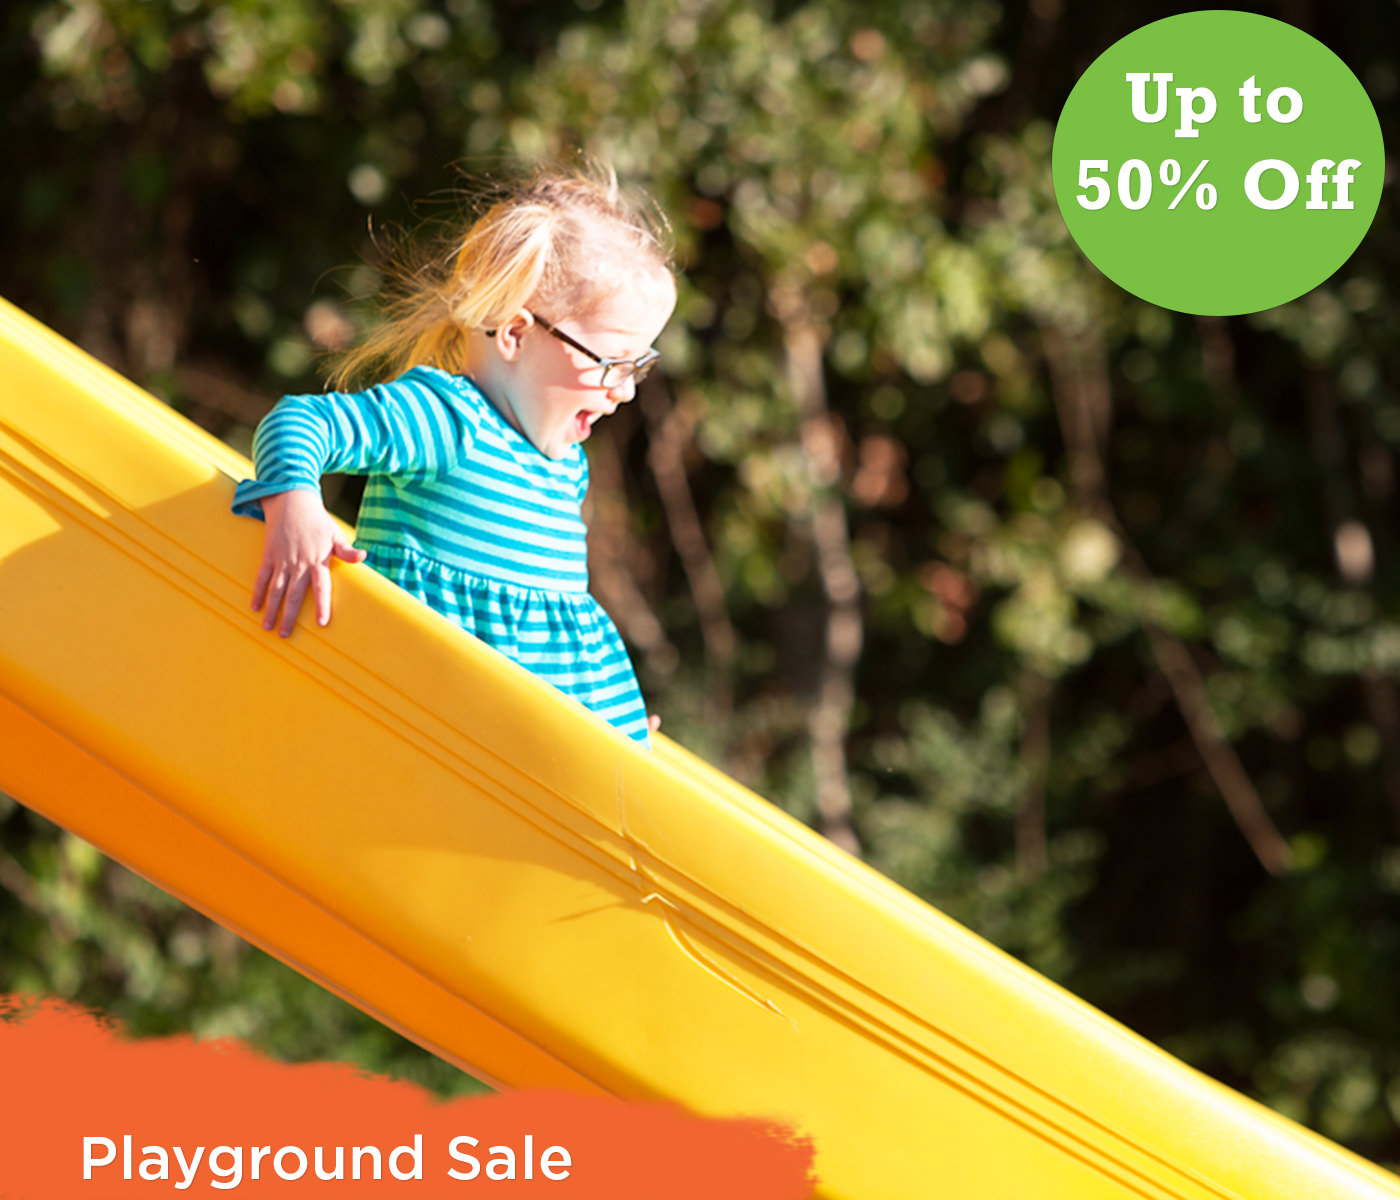 Check out our great outdoor playground and play structures for sale.